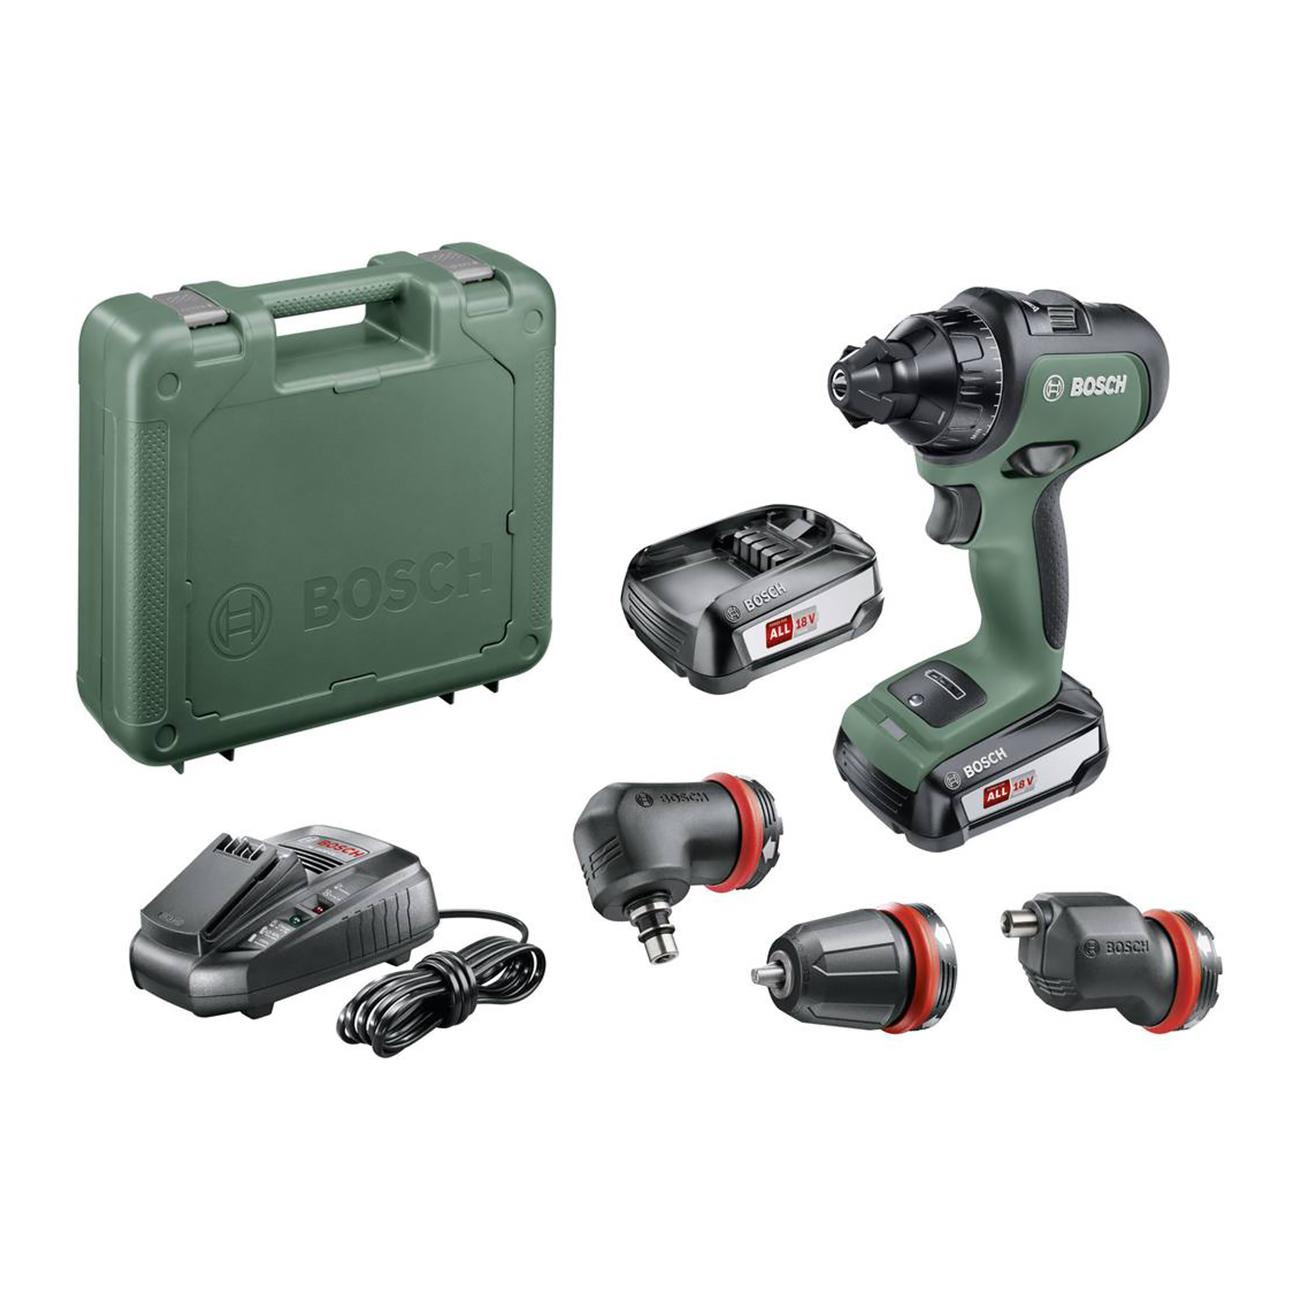 Cordless henry spare battery keystone direct drive dx2